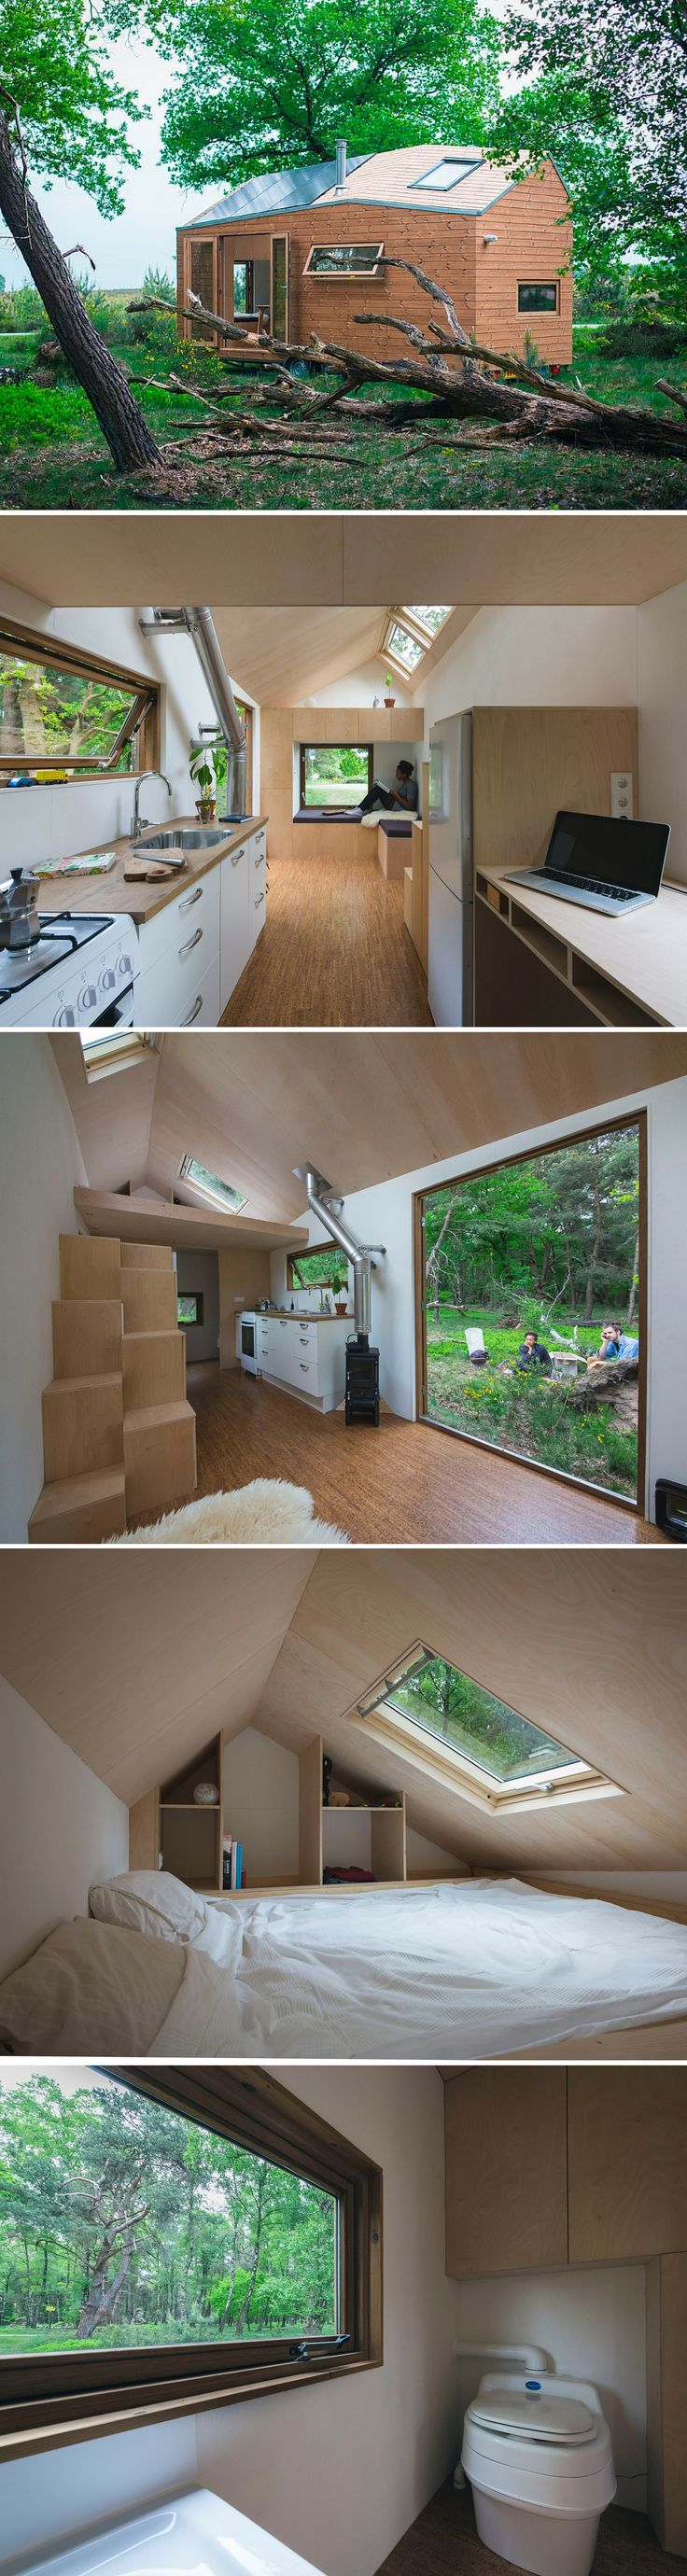 61 best small and prefab housing images on pinterest manufactured